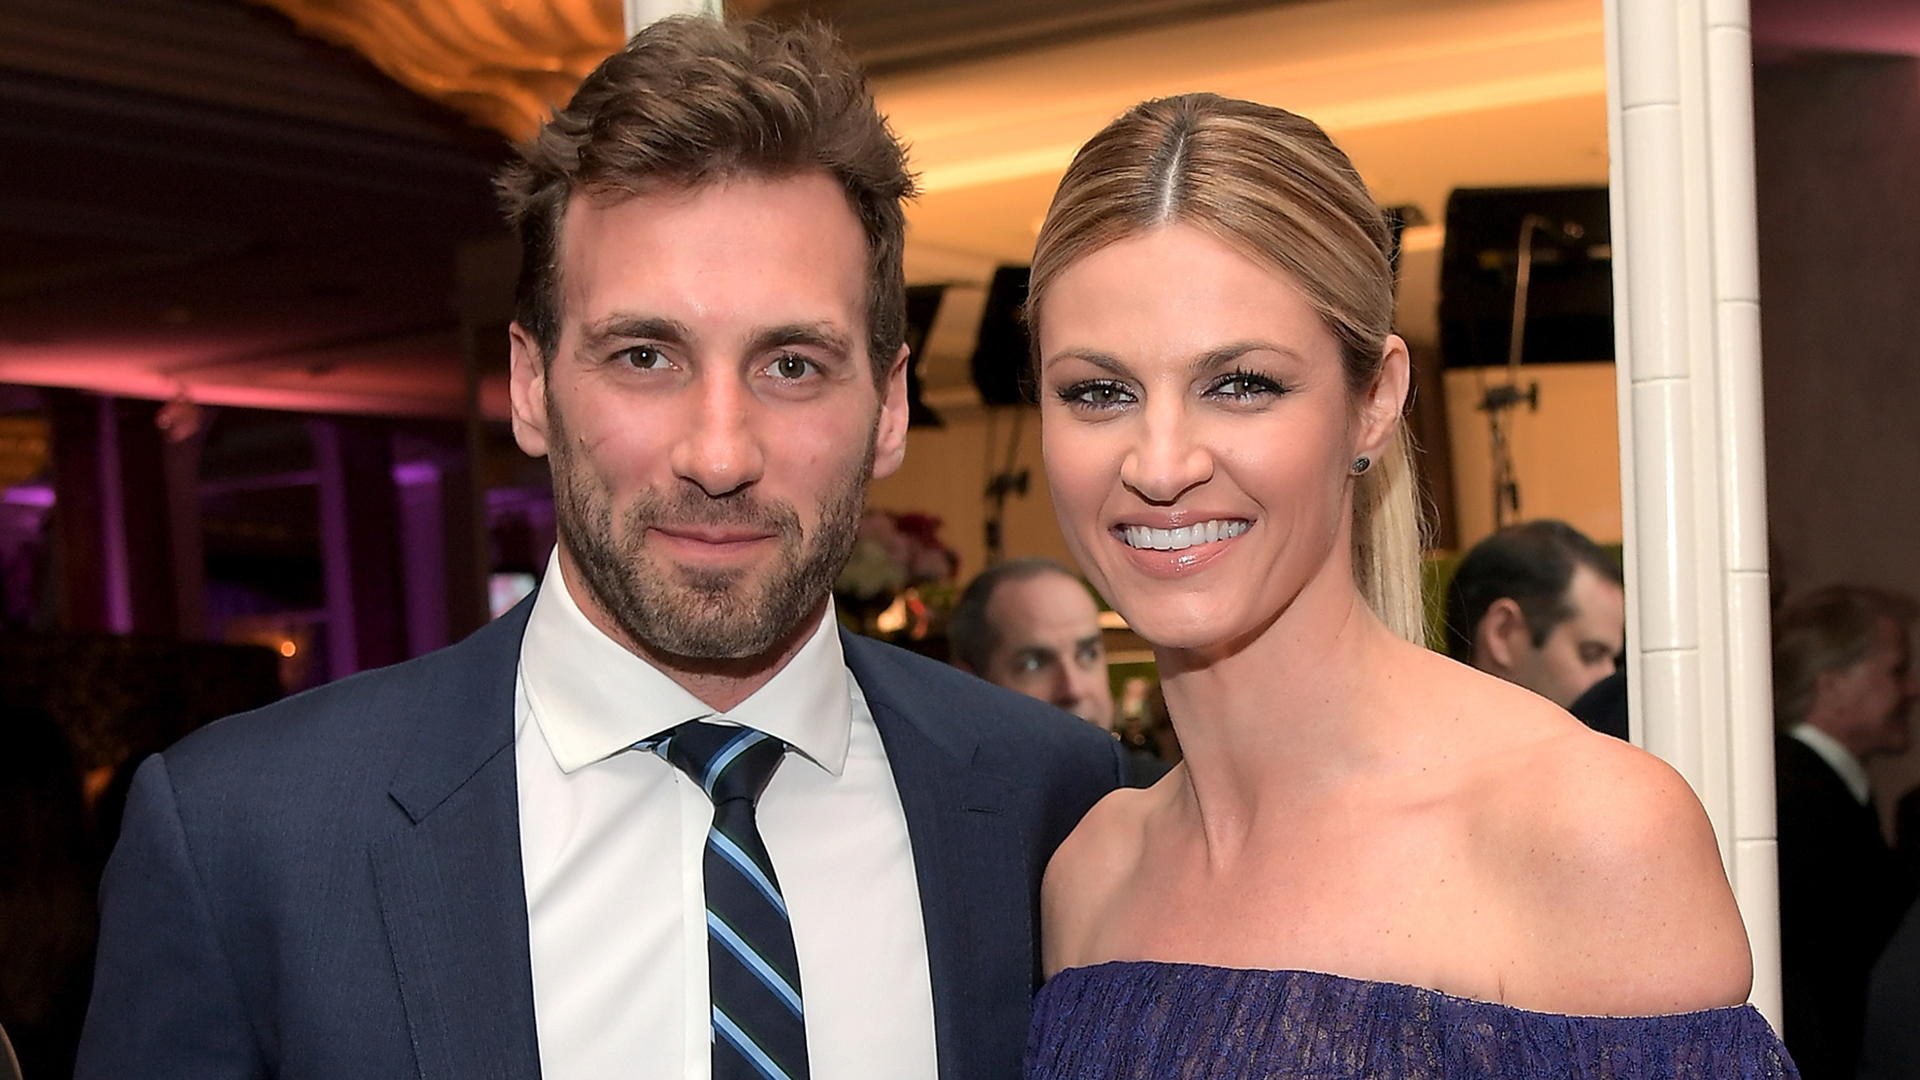 Erin Andrews Wedding.Erin Andrews Shares Photos From Her Wedding To Jarret Stoll